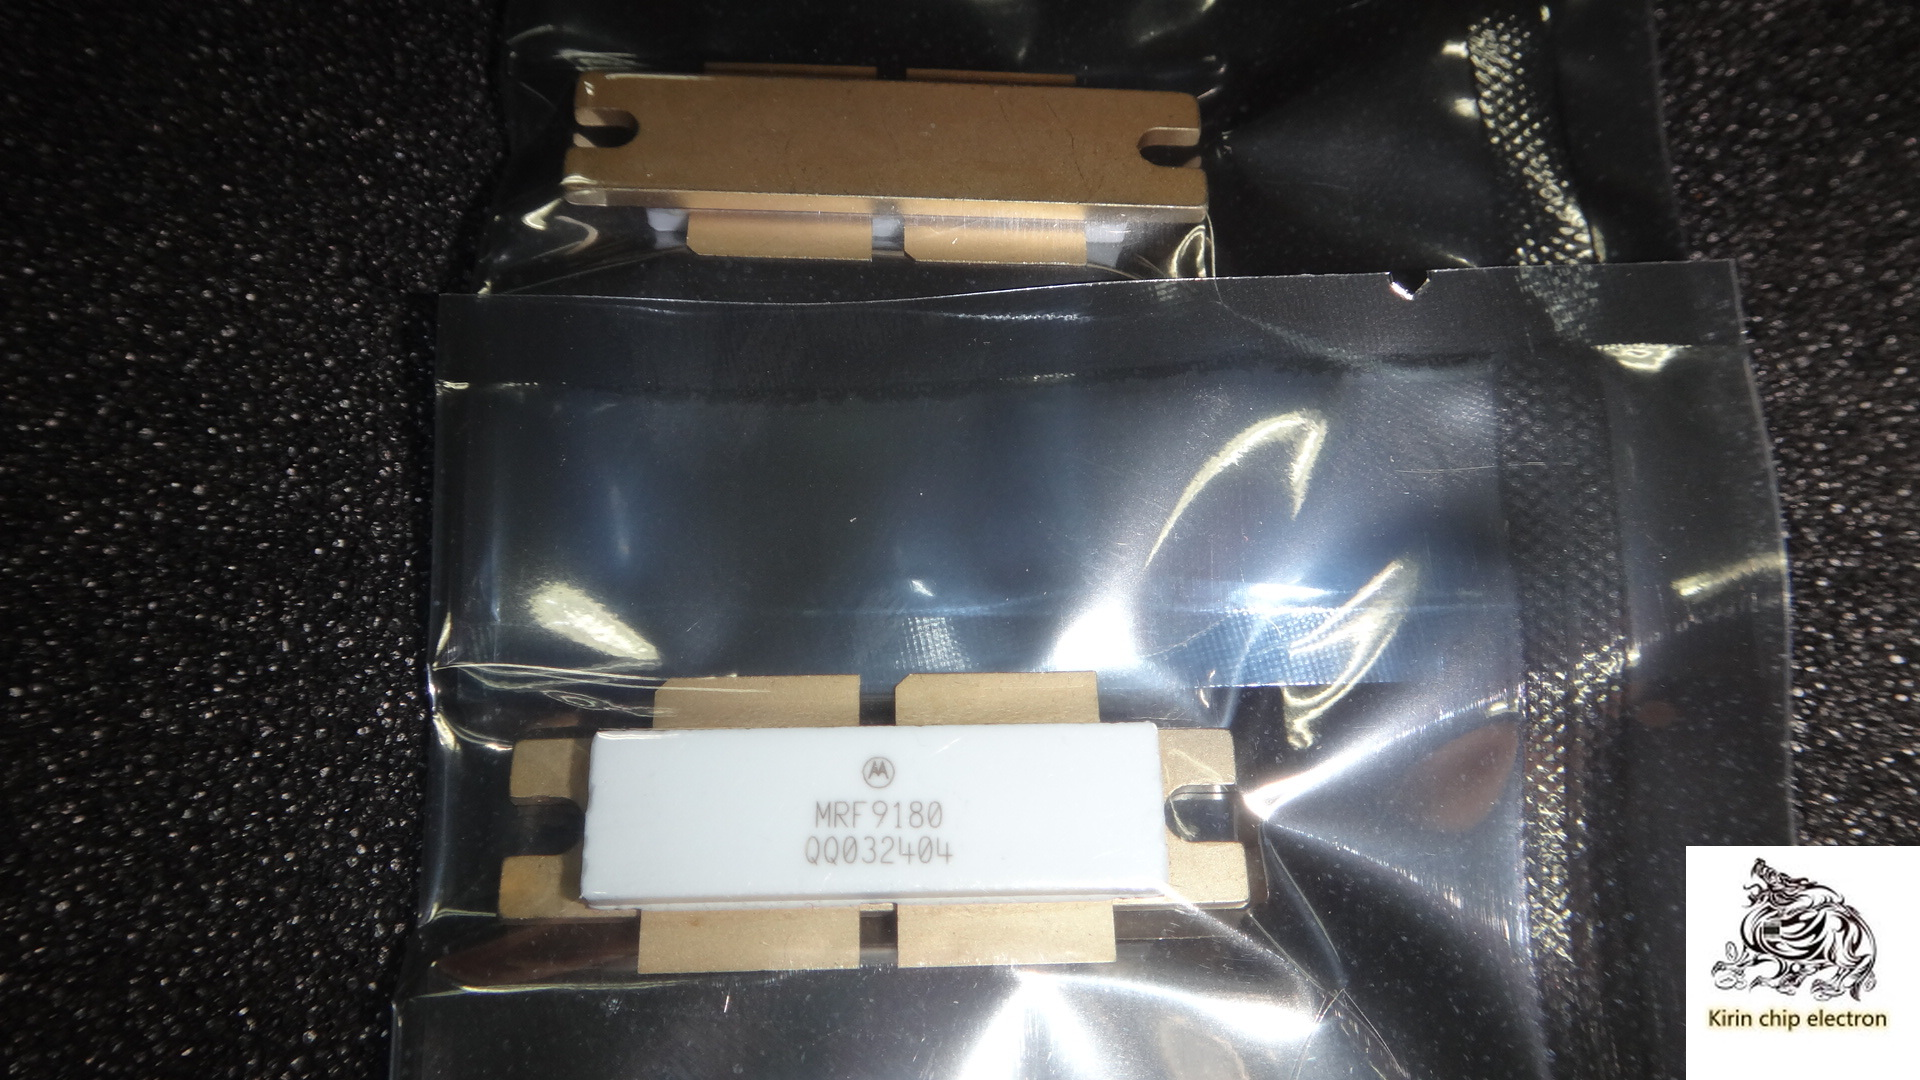 1pcs / Lot Mrf9180 RF Tube Mrf9180s RF Quality Assurance Of Exclusive RF Tube Microwave Tube